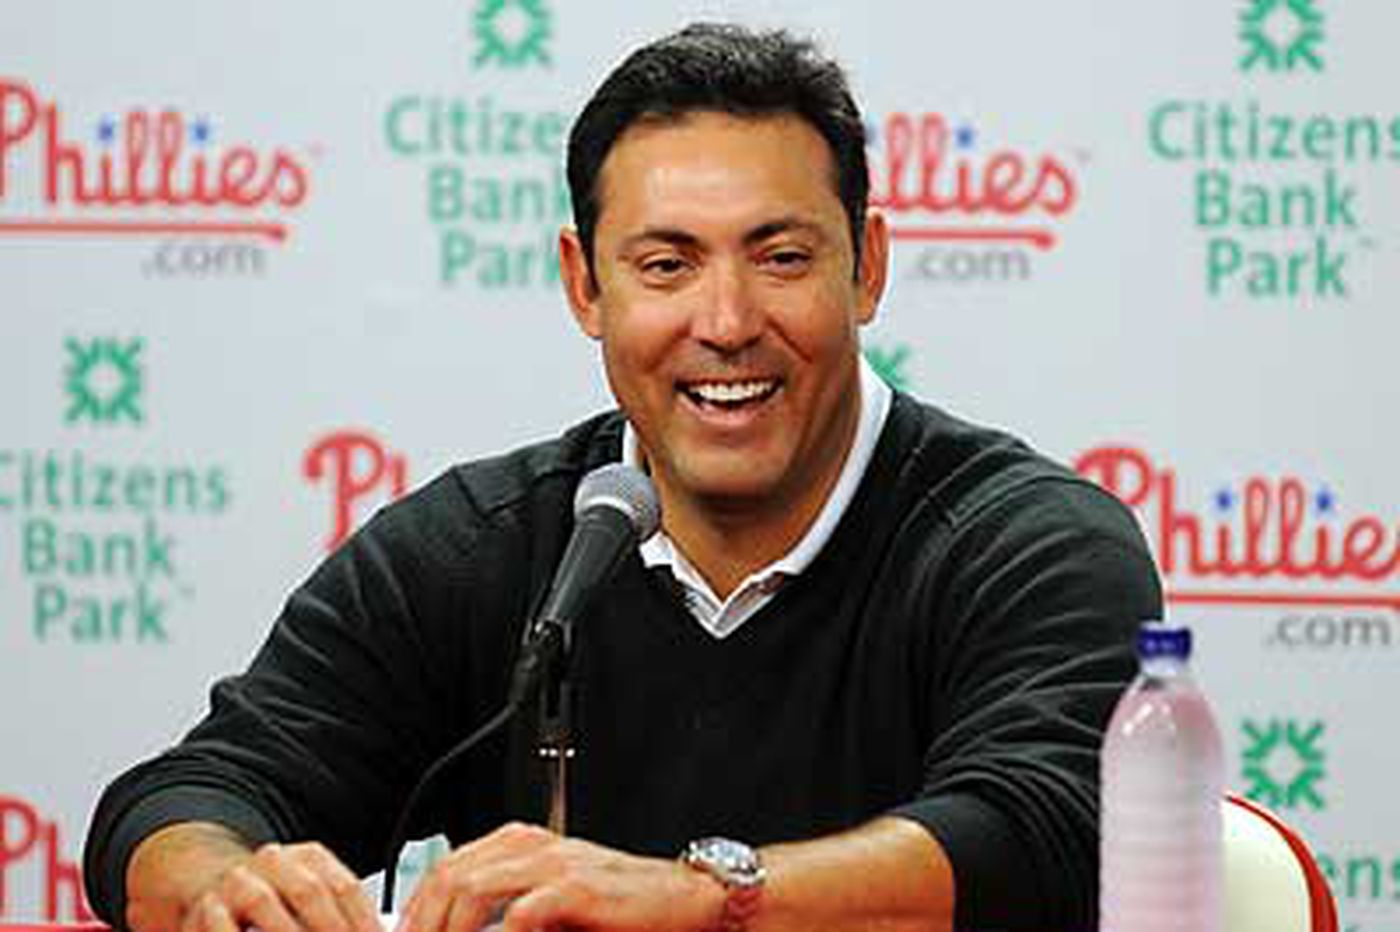 Phillies Notes: Trade deadline doesn't mean Phillies are done tinkering